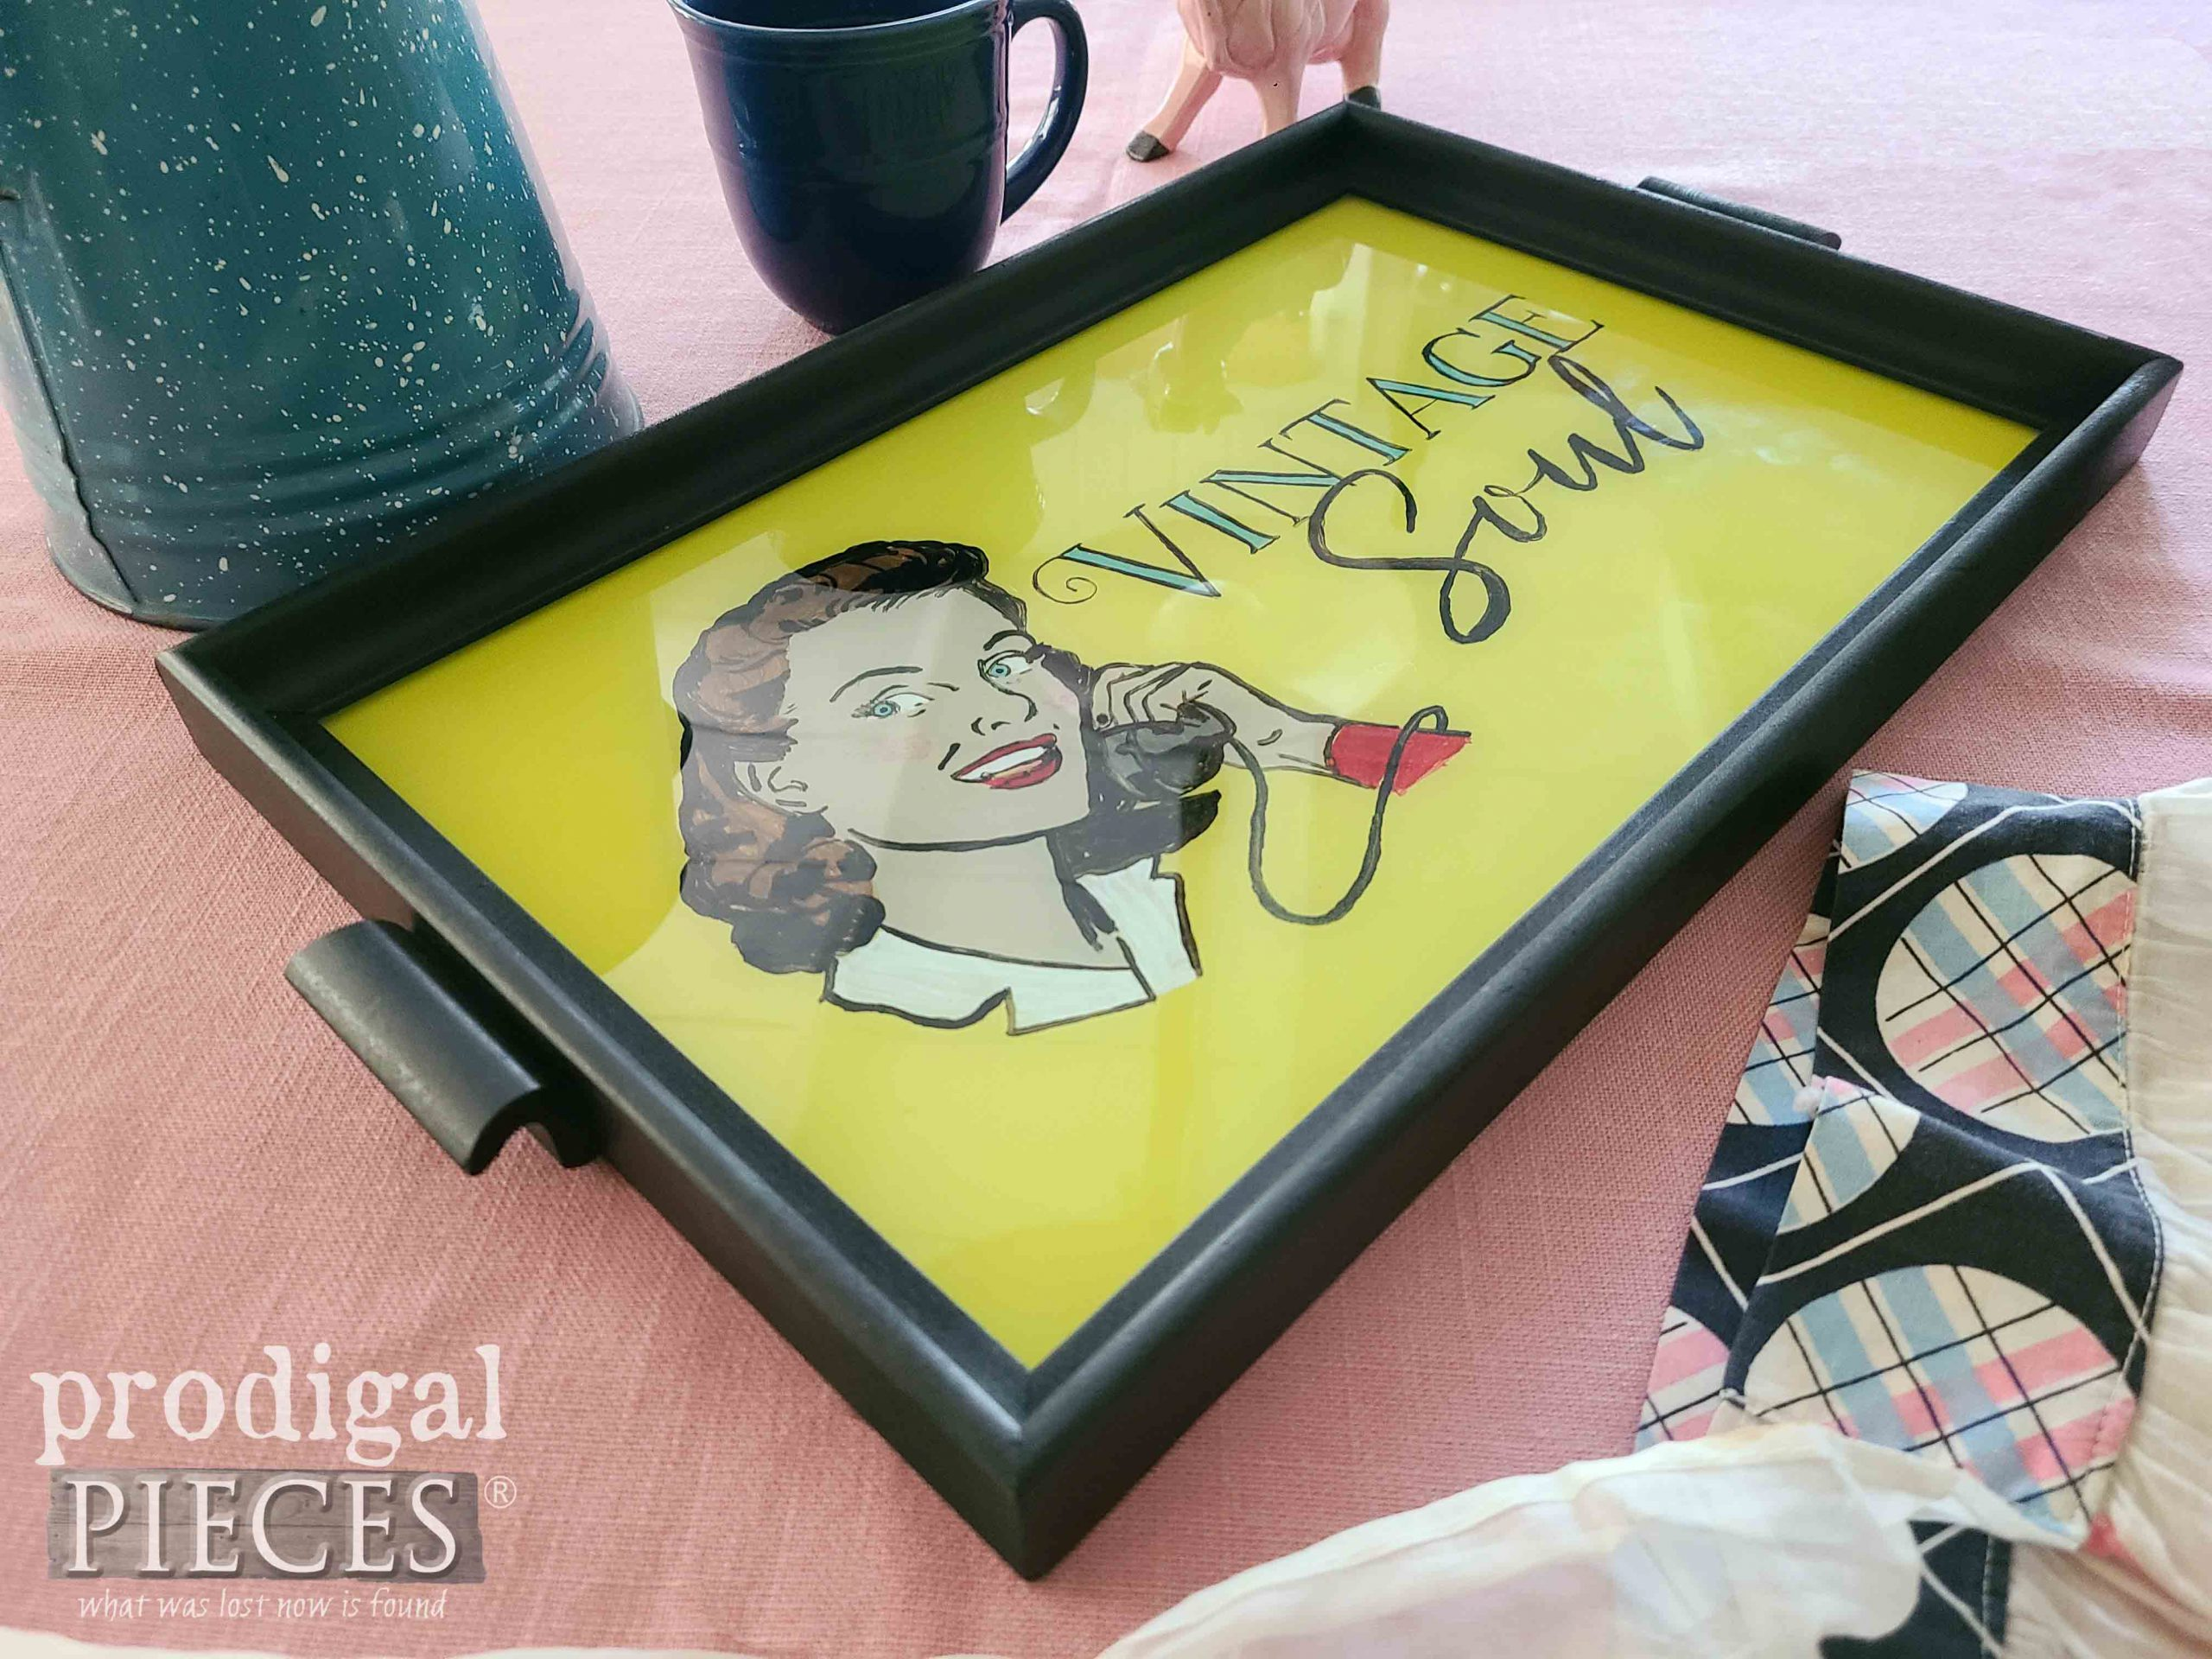 1950's Style Serving Tray with DIY Reverse Painting Tutorial by Larissa of Prodigal Pieces | prodigalpieces.com #prodigalpieces #vintage #home #diy